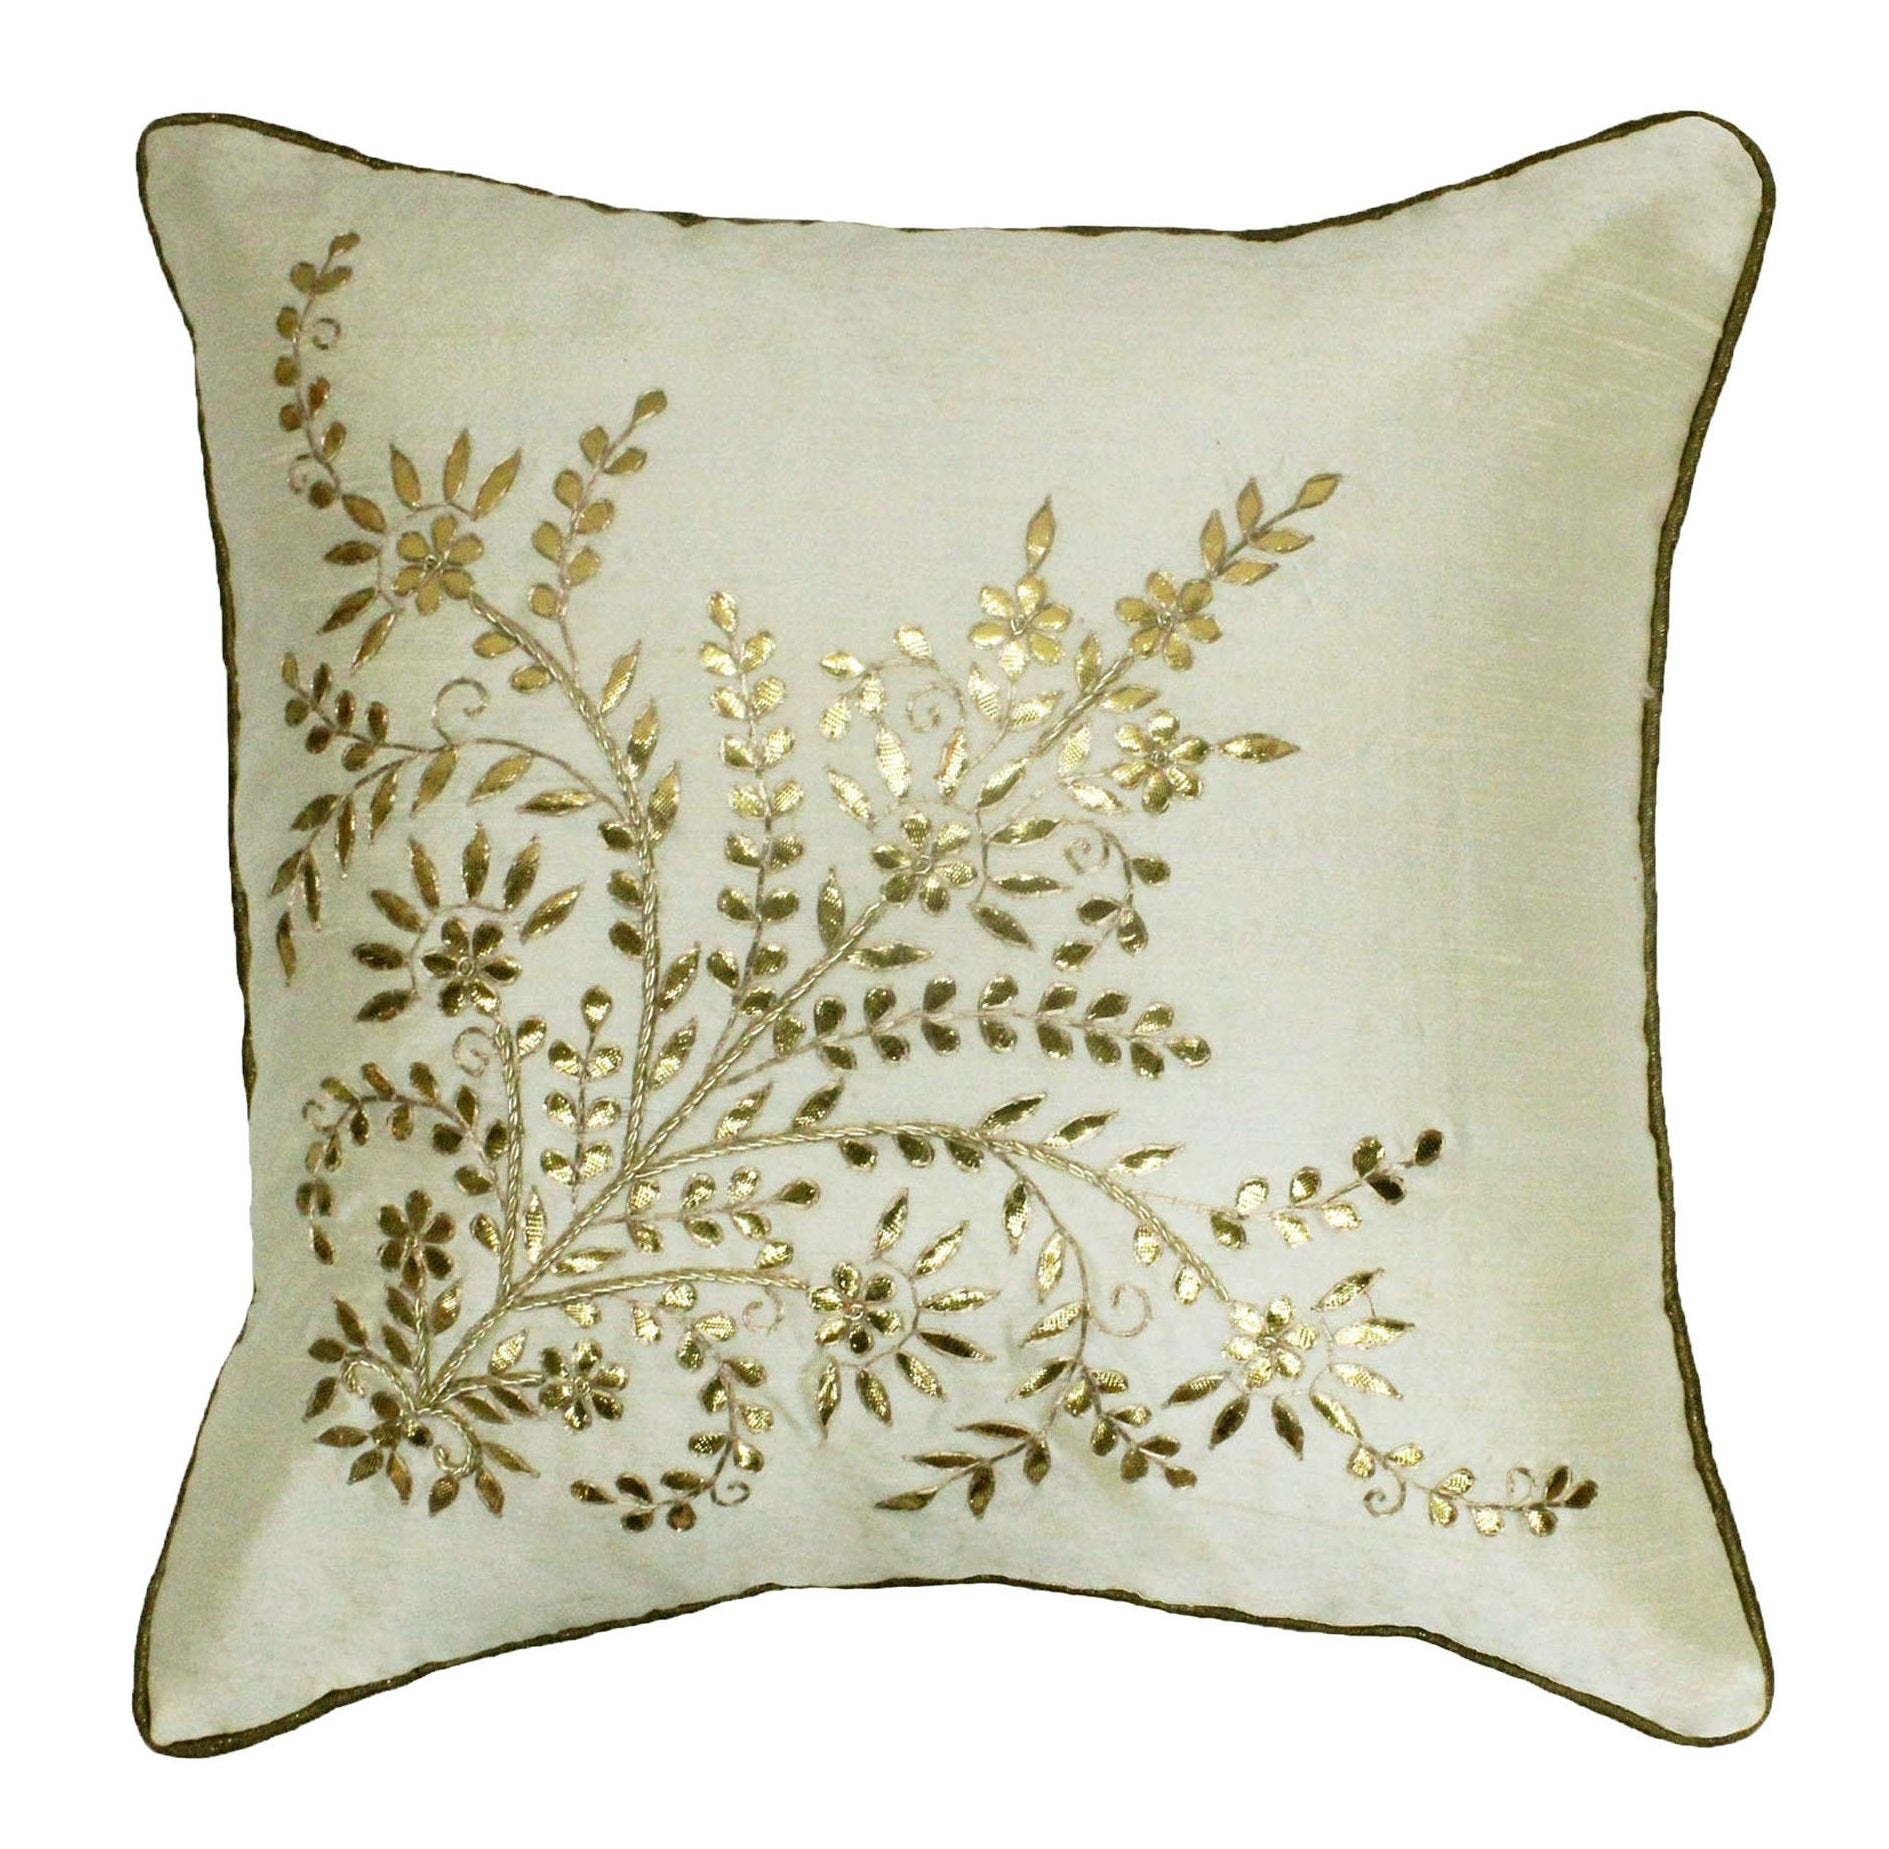 Copy of Gota Patti cushion cover - Off white - Large floral corner boota cushion cover - 16x16 inches - Dupioni silk